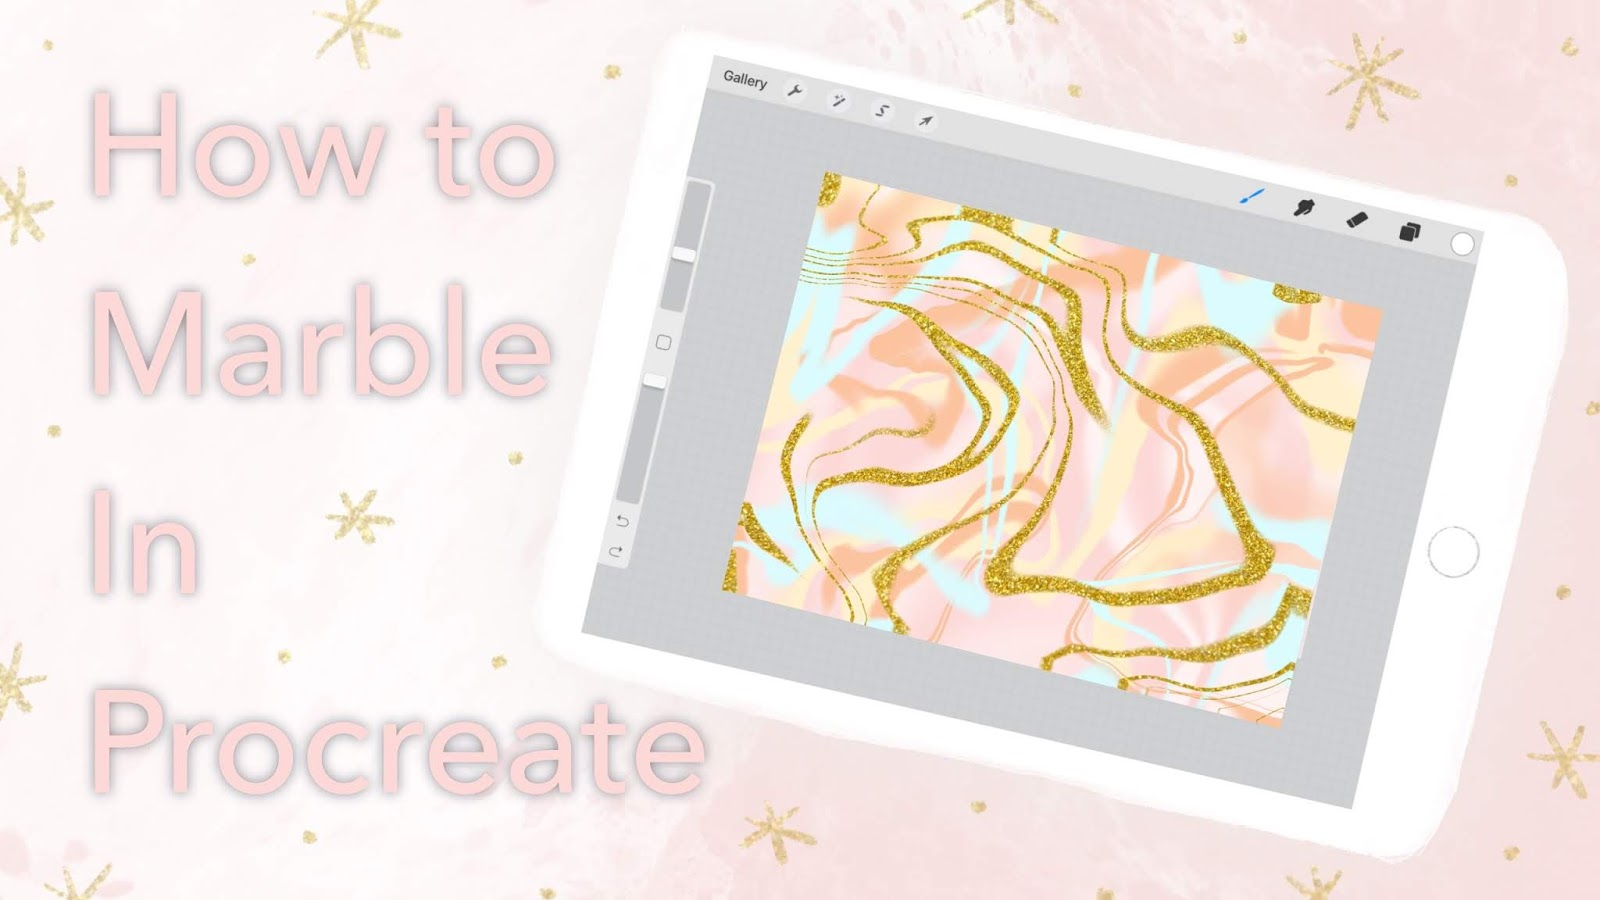 How to Marble in Procreate 25 Sweetpeas